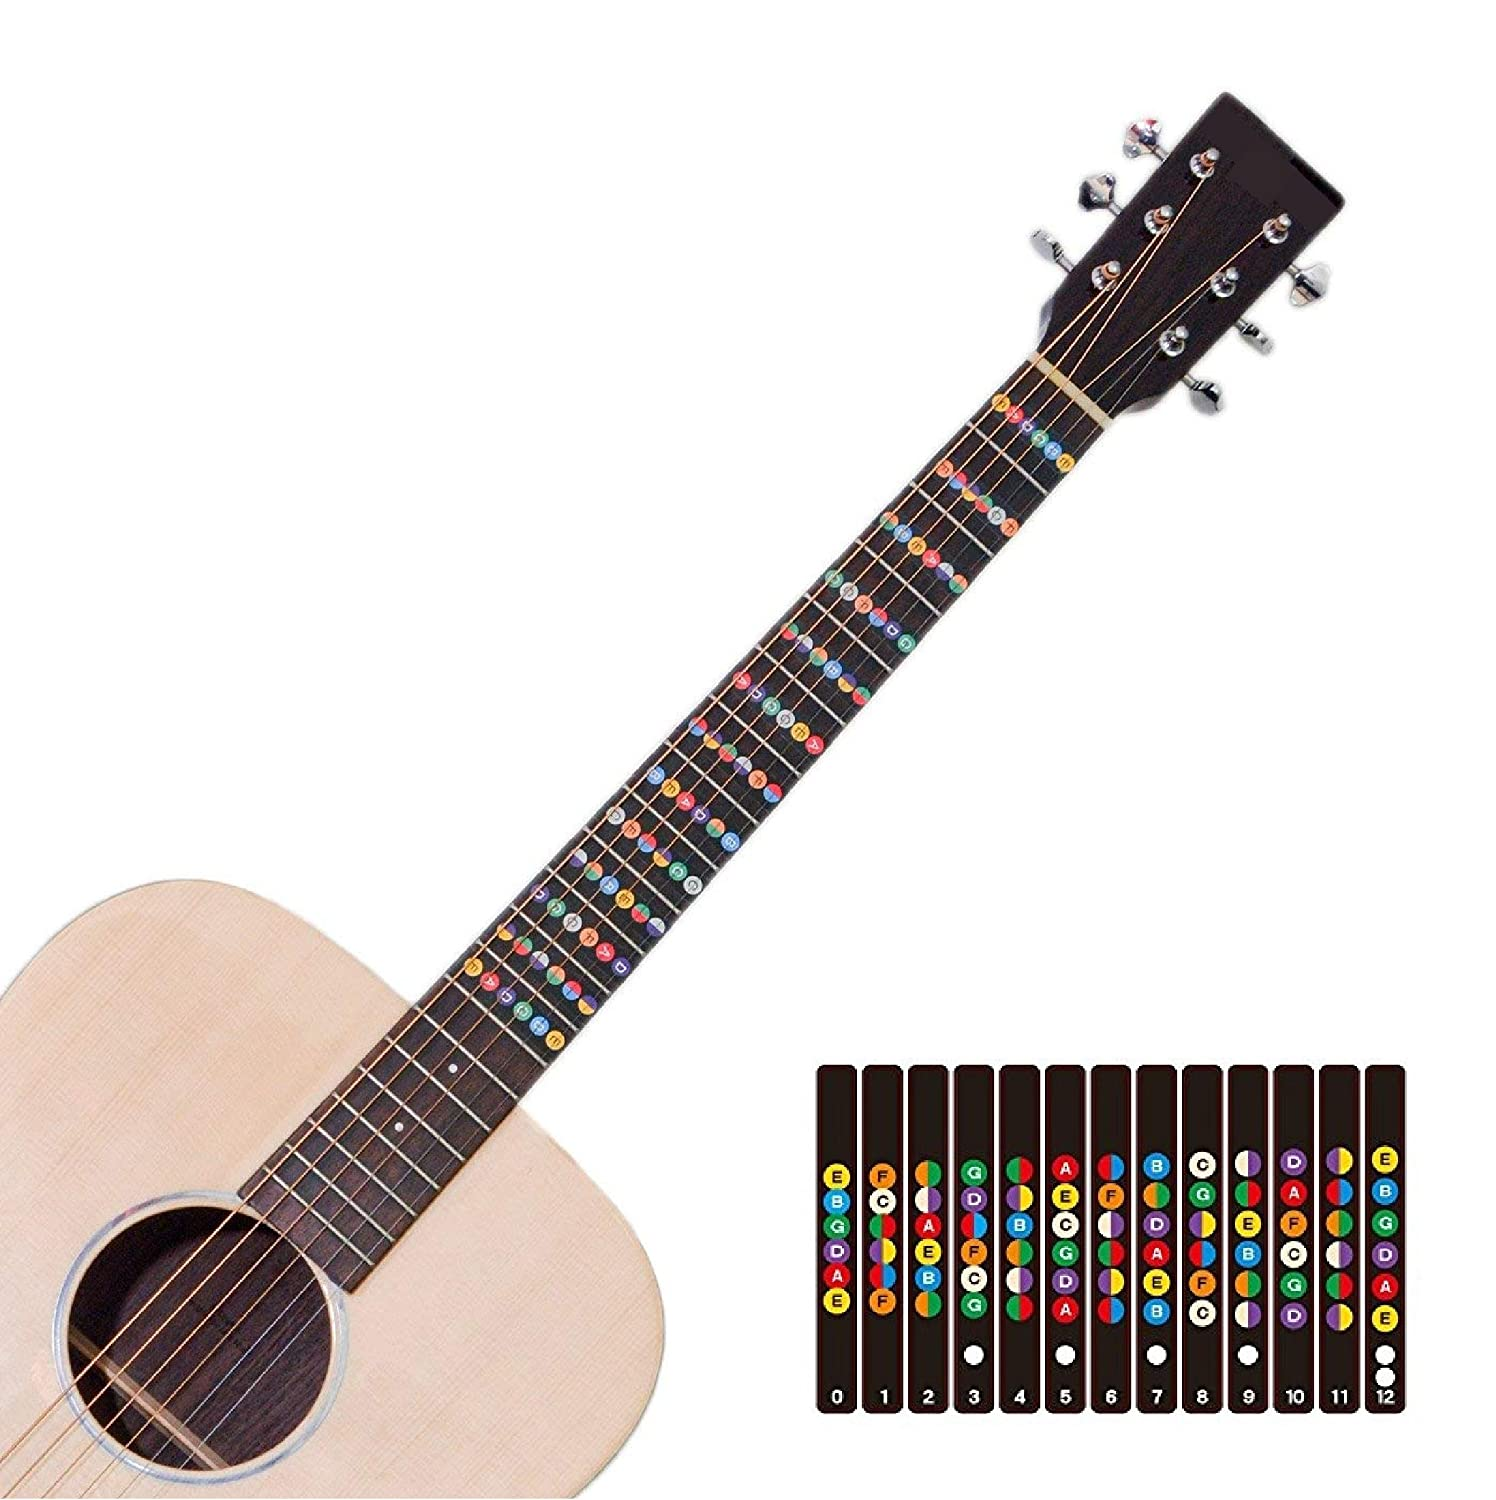 Guitar fret stickers Color Coded Fretboard Fret Map Guitar Note Stickers for Beginner to Advanced Epic Designs